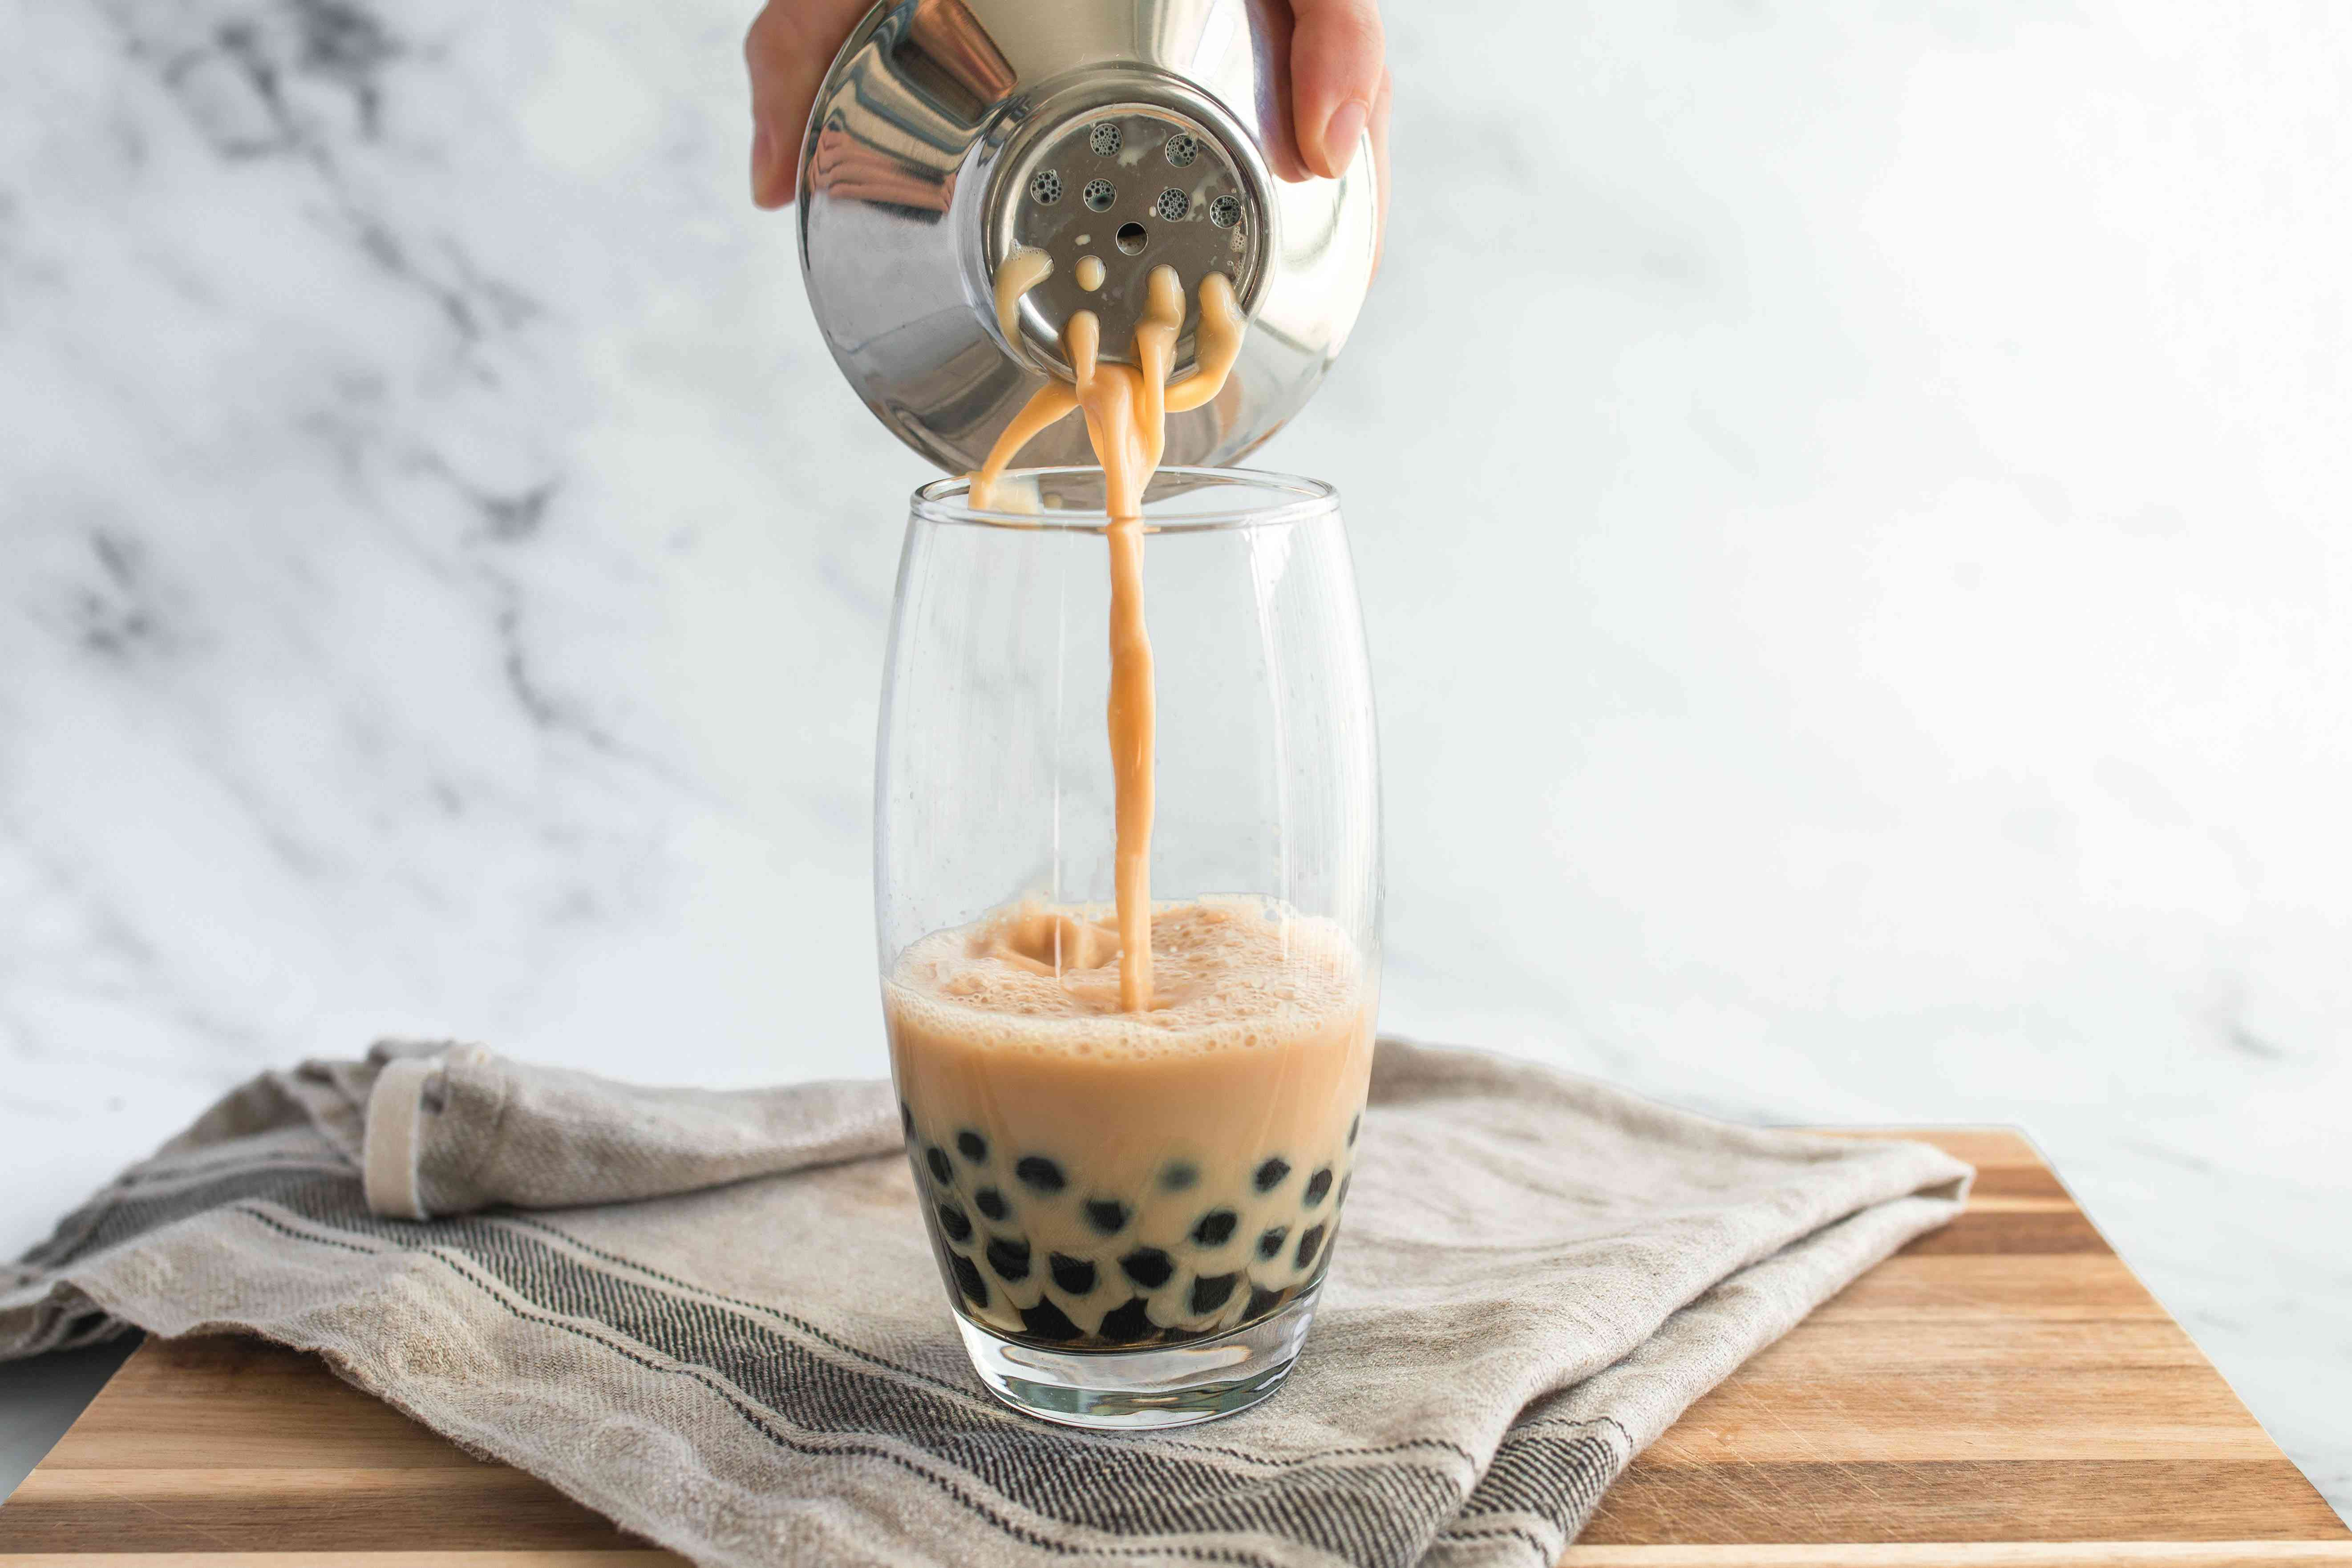 Person pouring liquid into a glass with tapioca pearls.